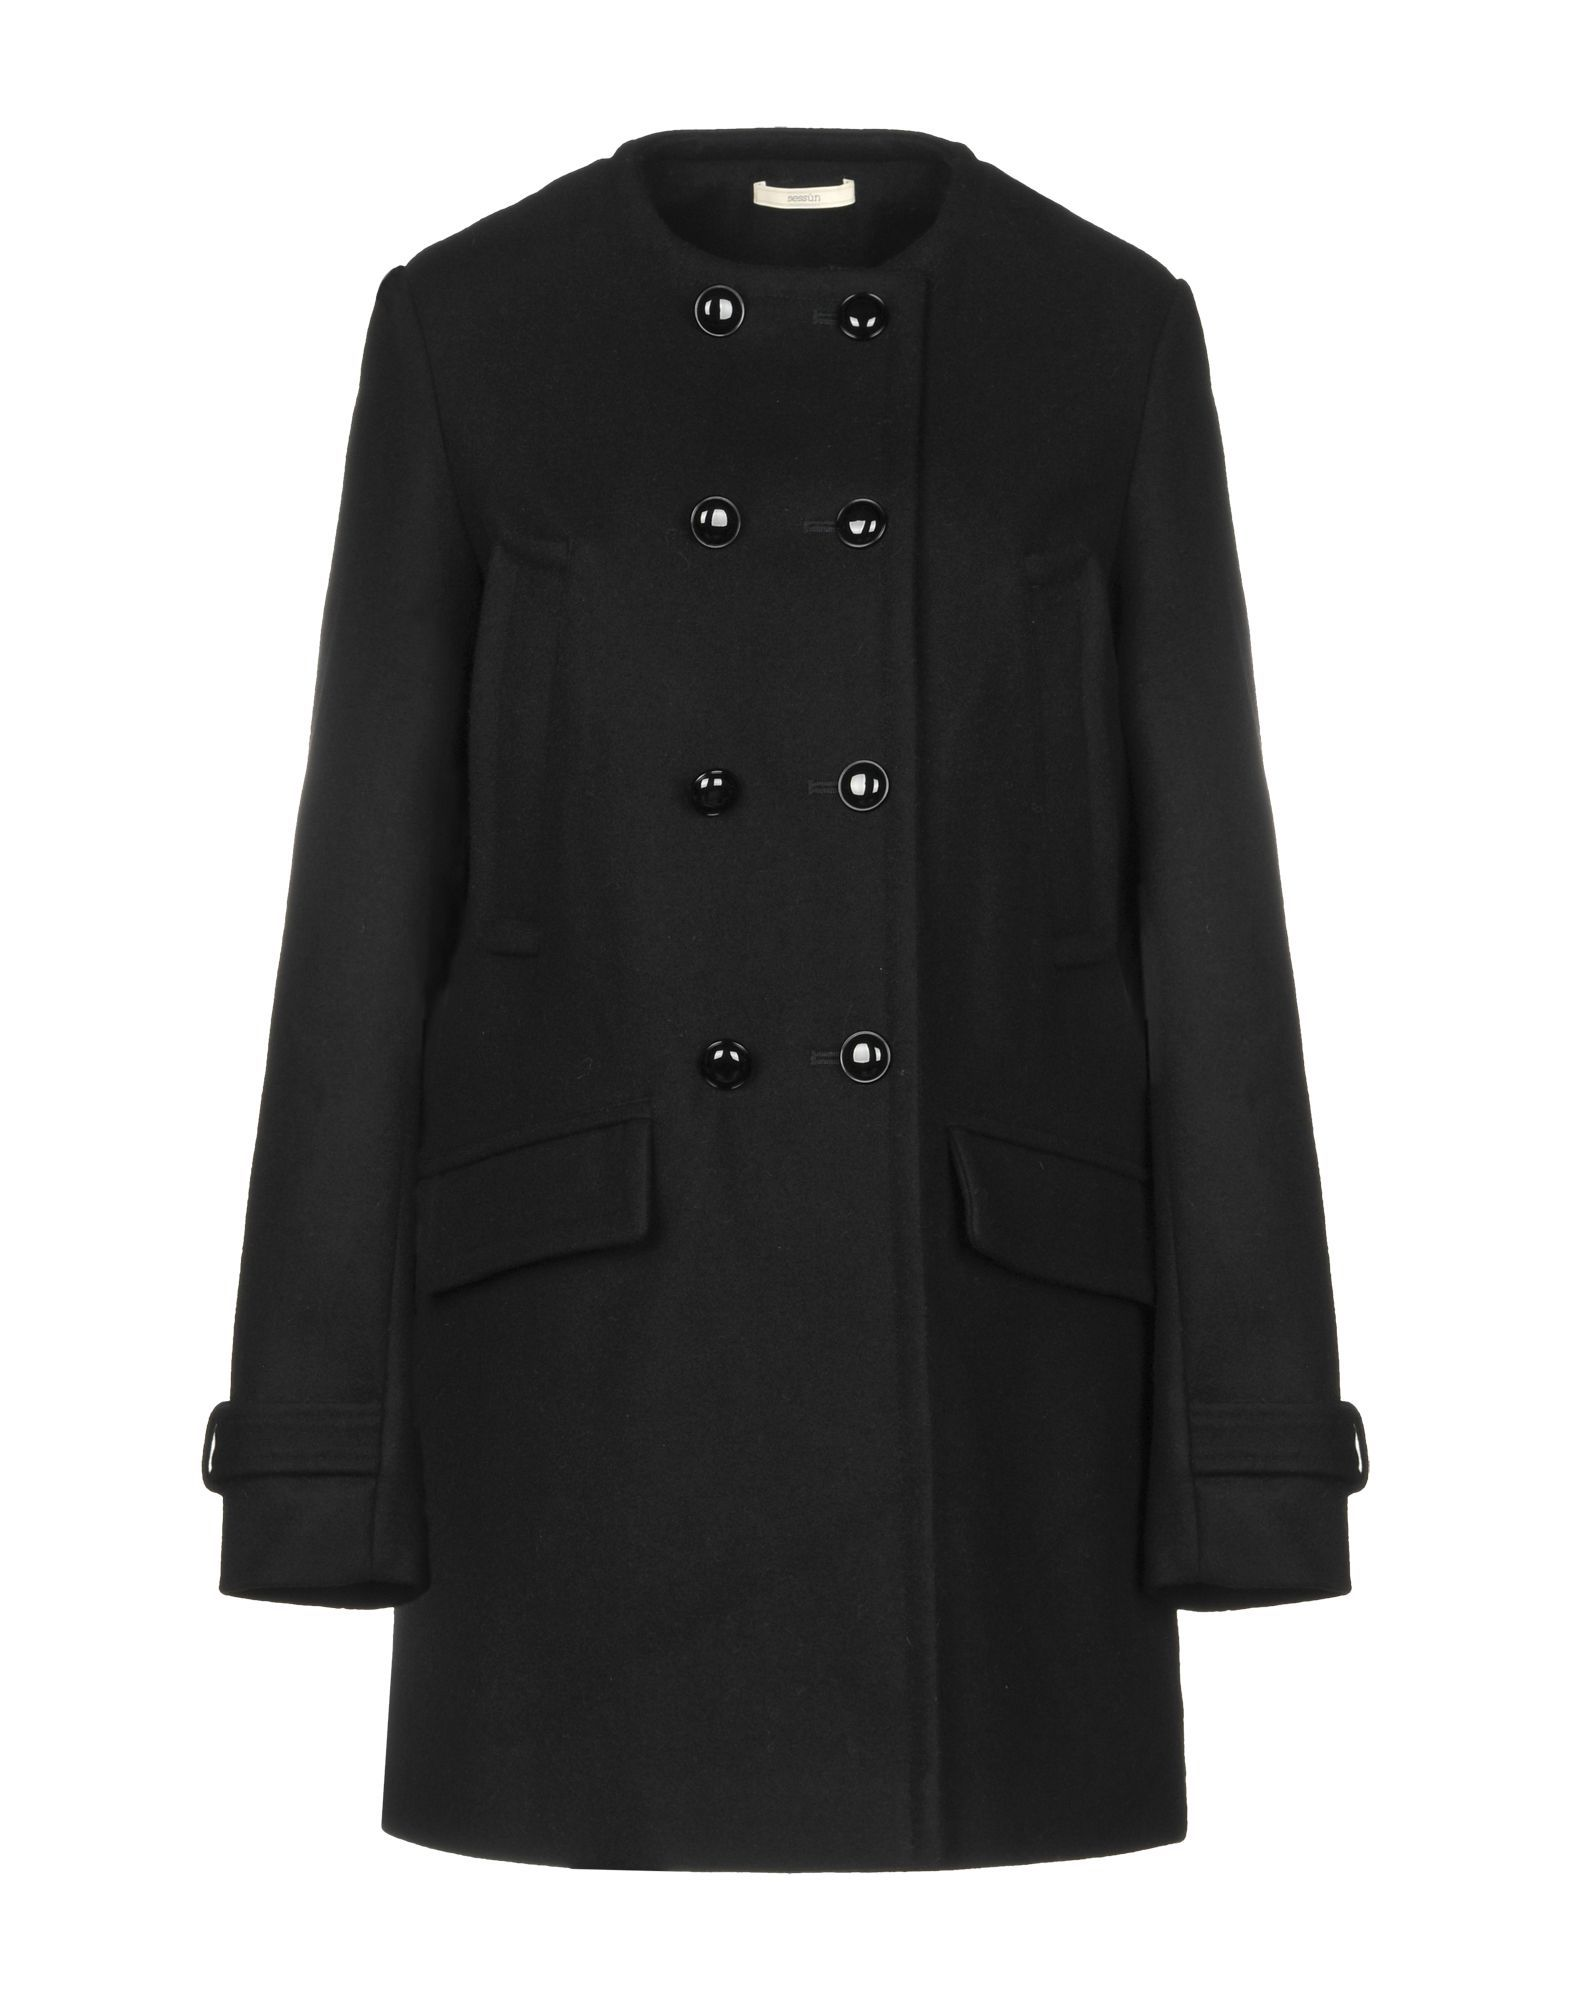 Sessun Black Wool Double Breasted Coat